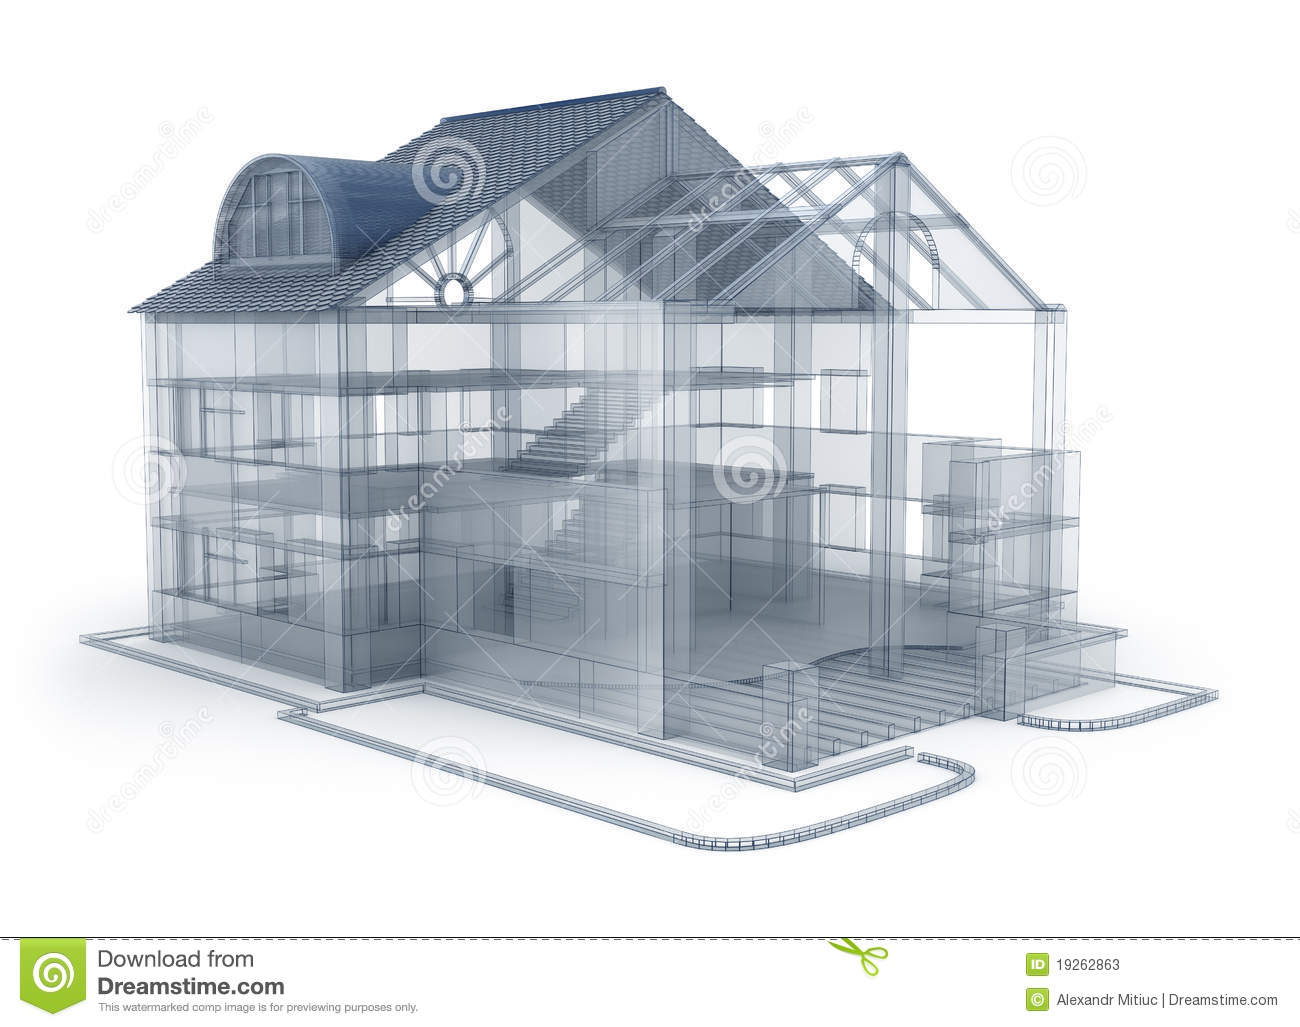 Maison de plan d 39 architecture illustration stock image for Plan d architecture